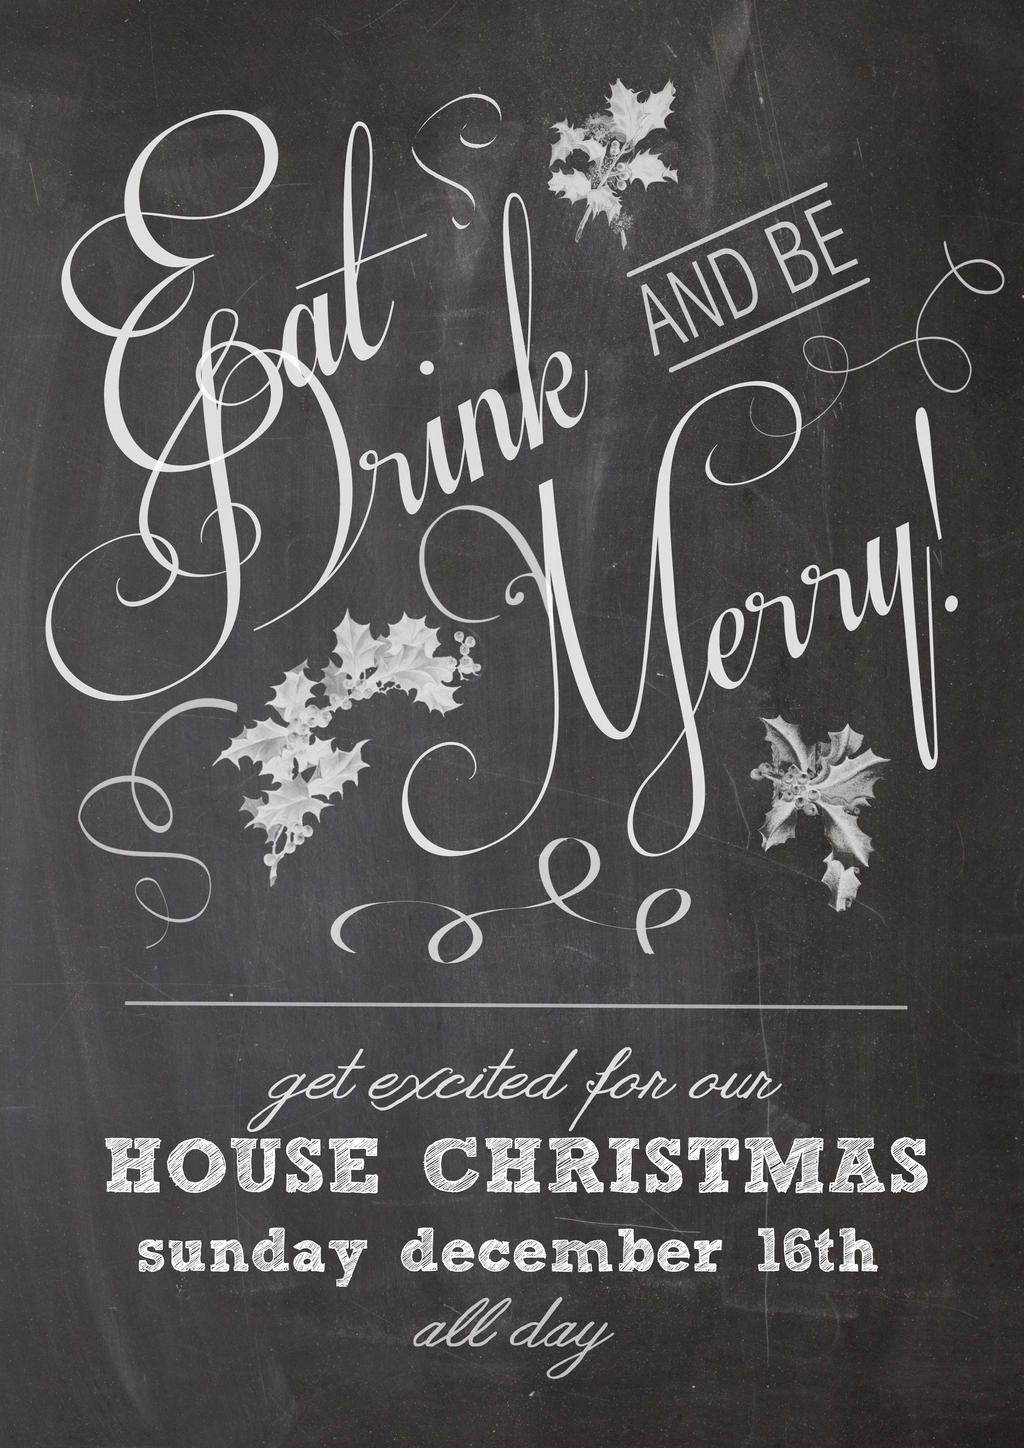 house christmas party poster by sowhitehead on house christmas party poster by sowhitehead house christmas party poster by sowhitehead